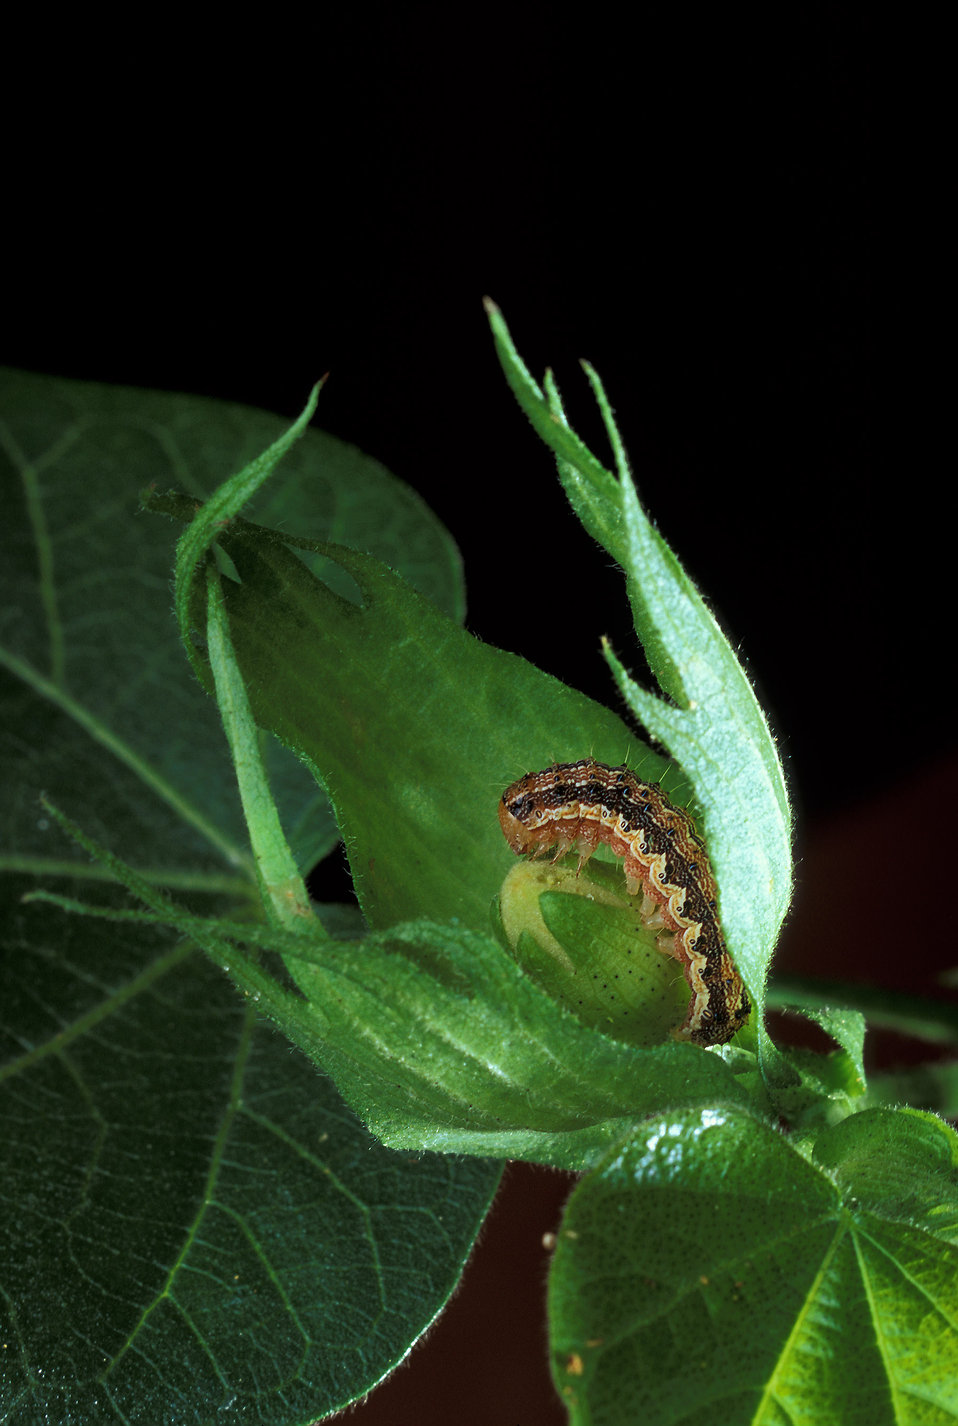 A cotton bollworm on a leaf : Free Stock Photo